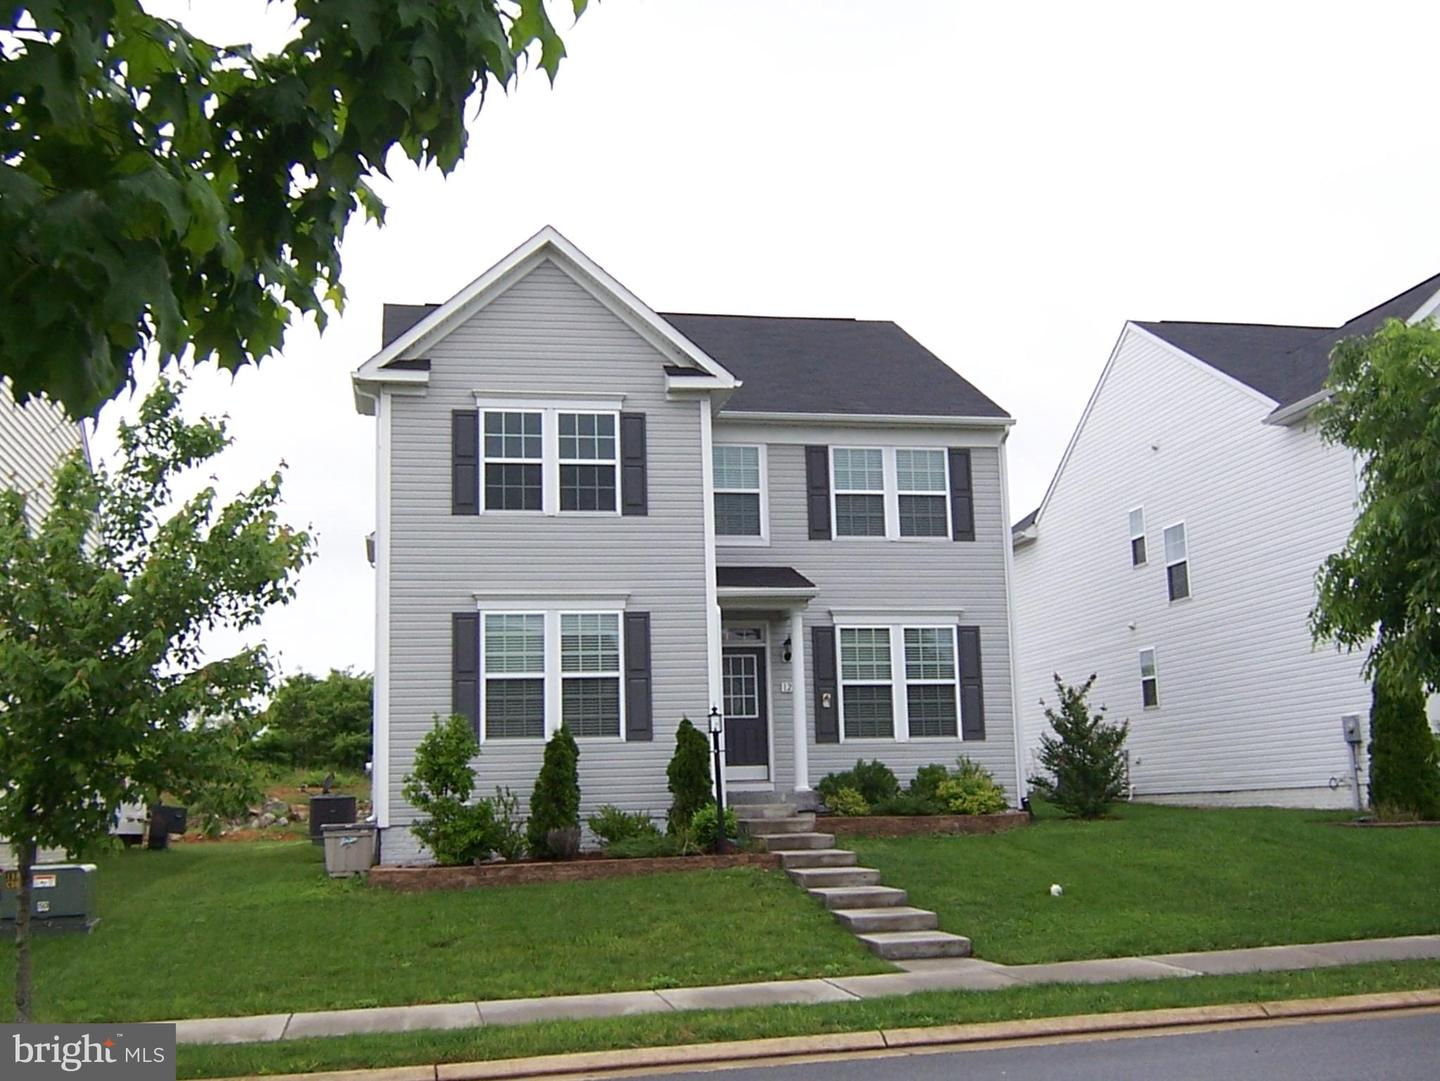 Single Family for Sale at 1231 N. Fairfax Ranson, West Virginia 25438 United States